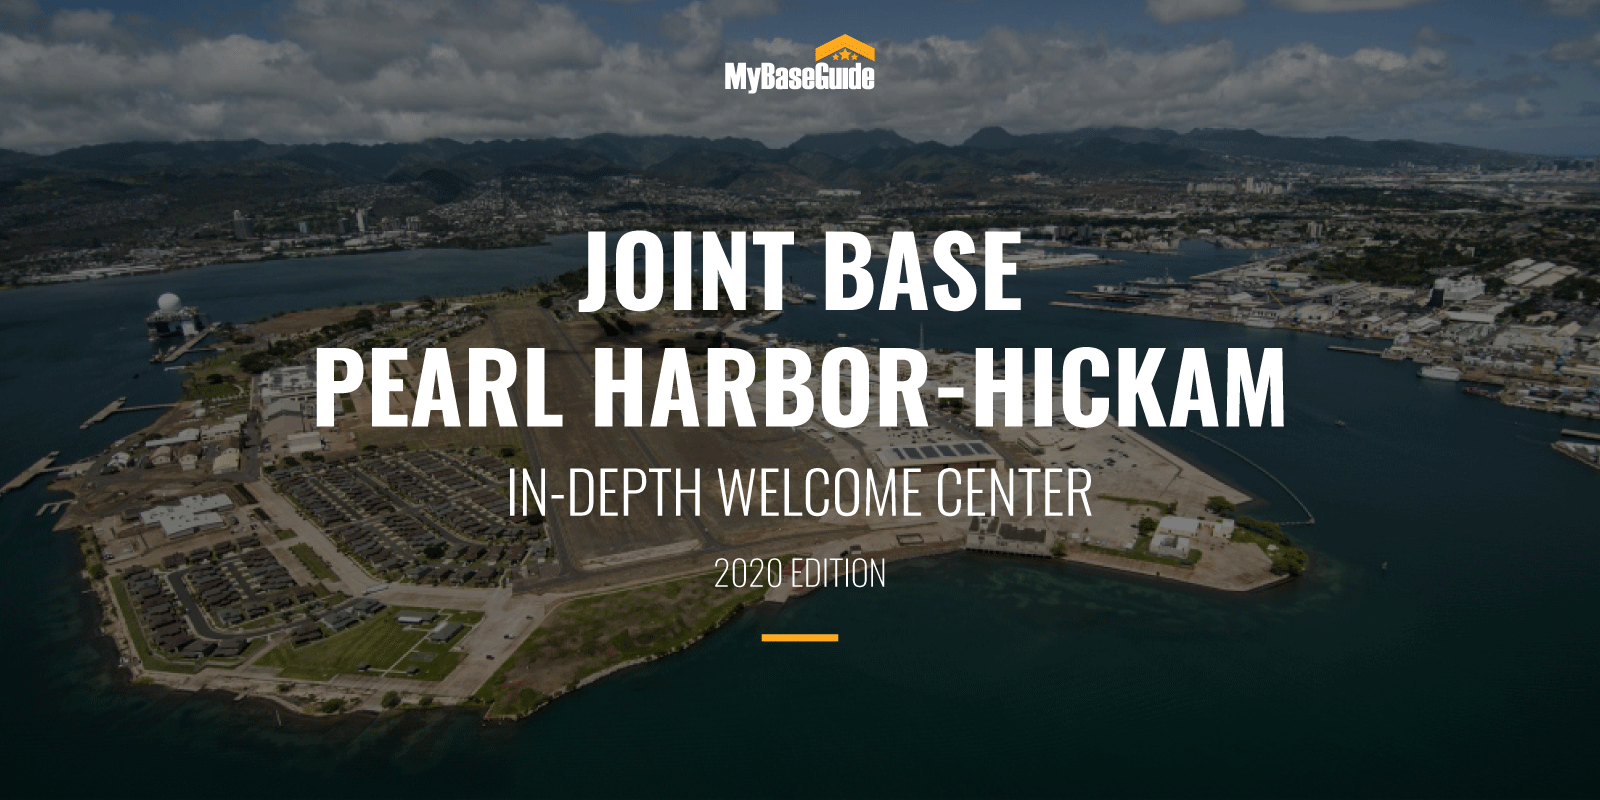 Joint Base Pearl Harbor-Hickam: In-Depth Welcome Center